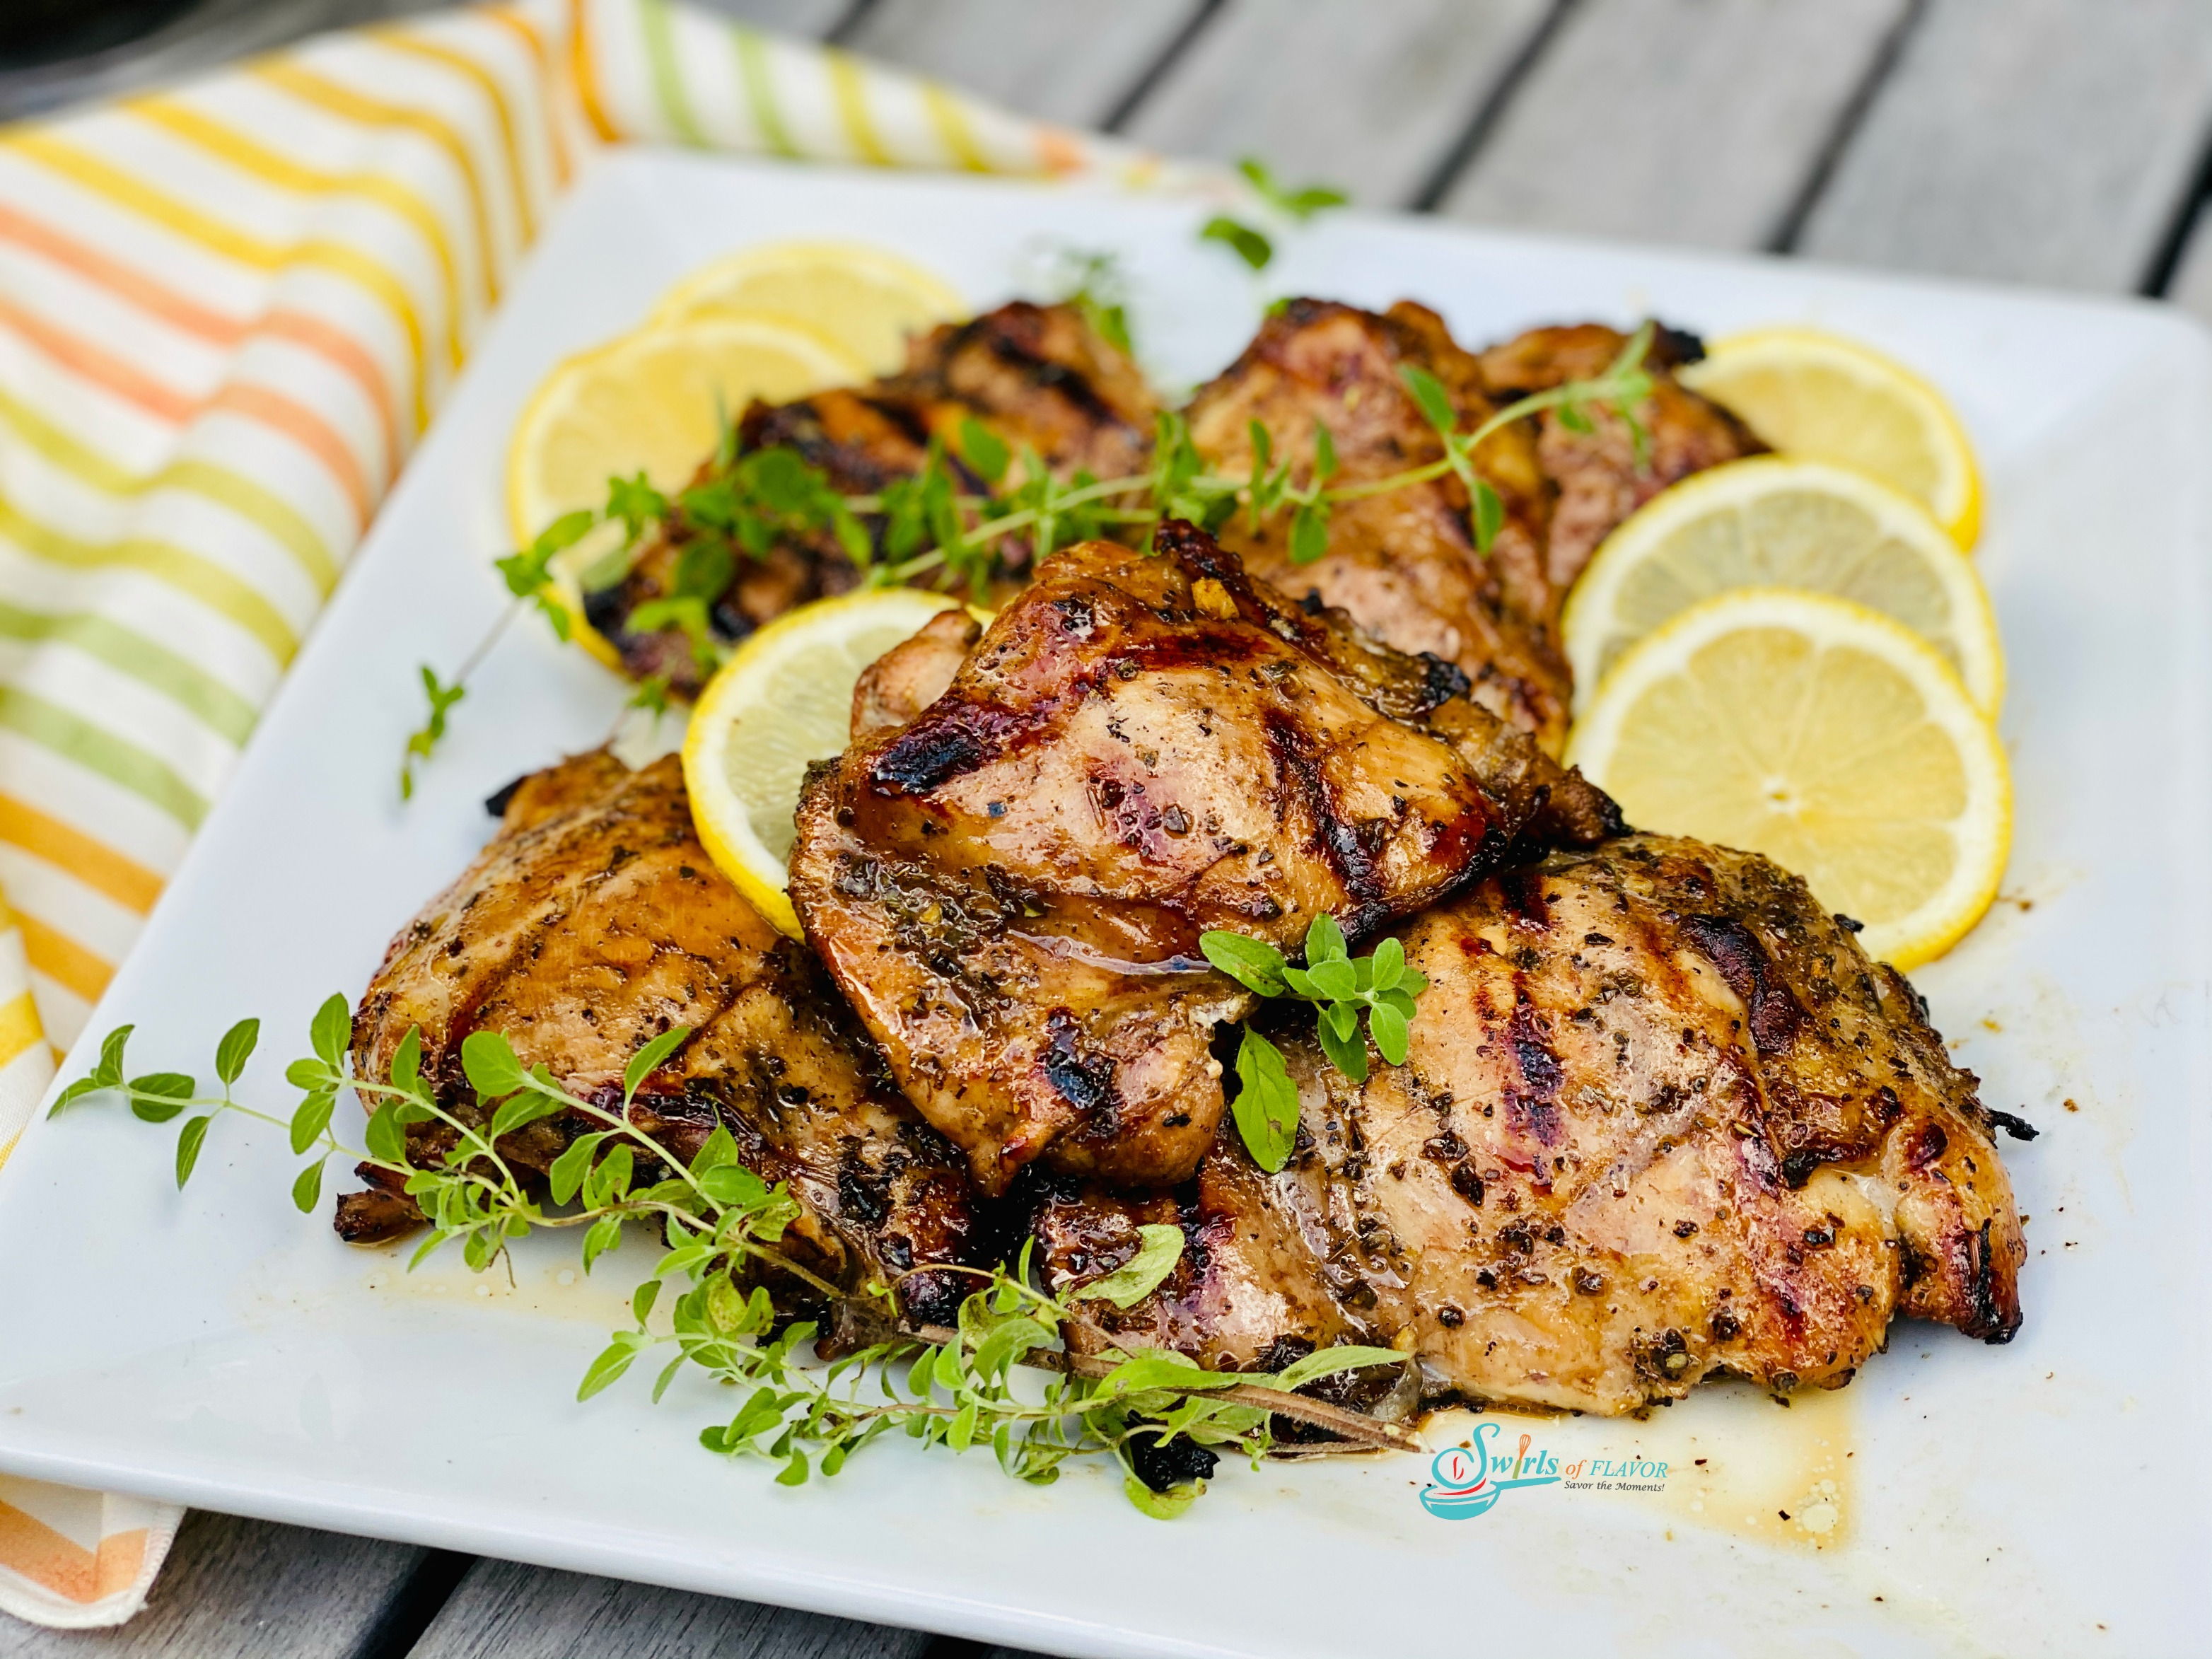 Grilled Balsamic Chicken Recipe - easy outdoor grill recipes